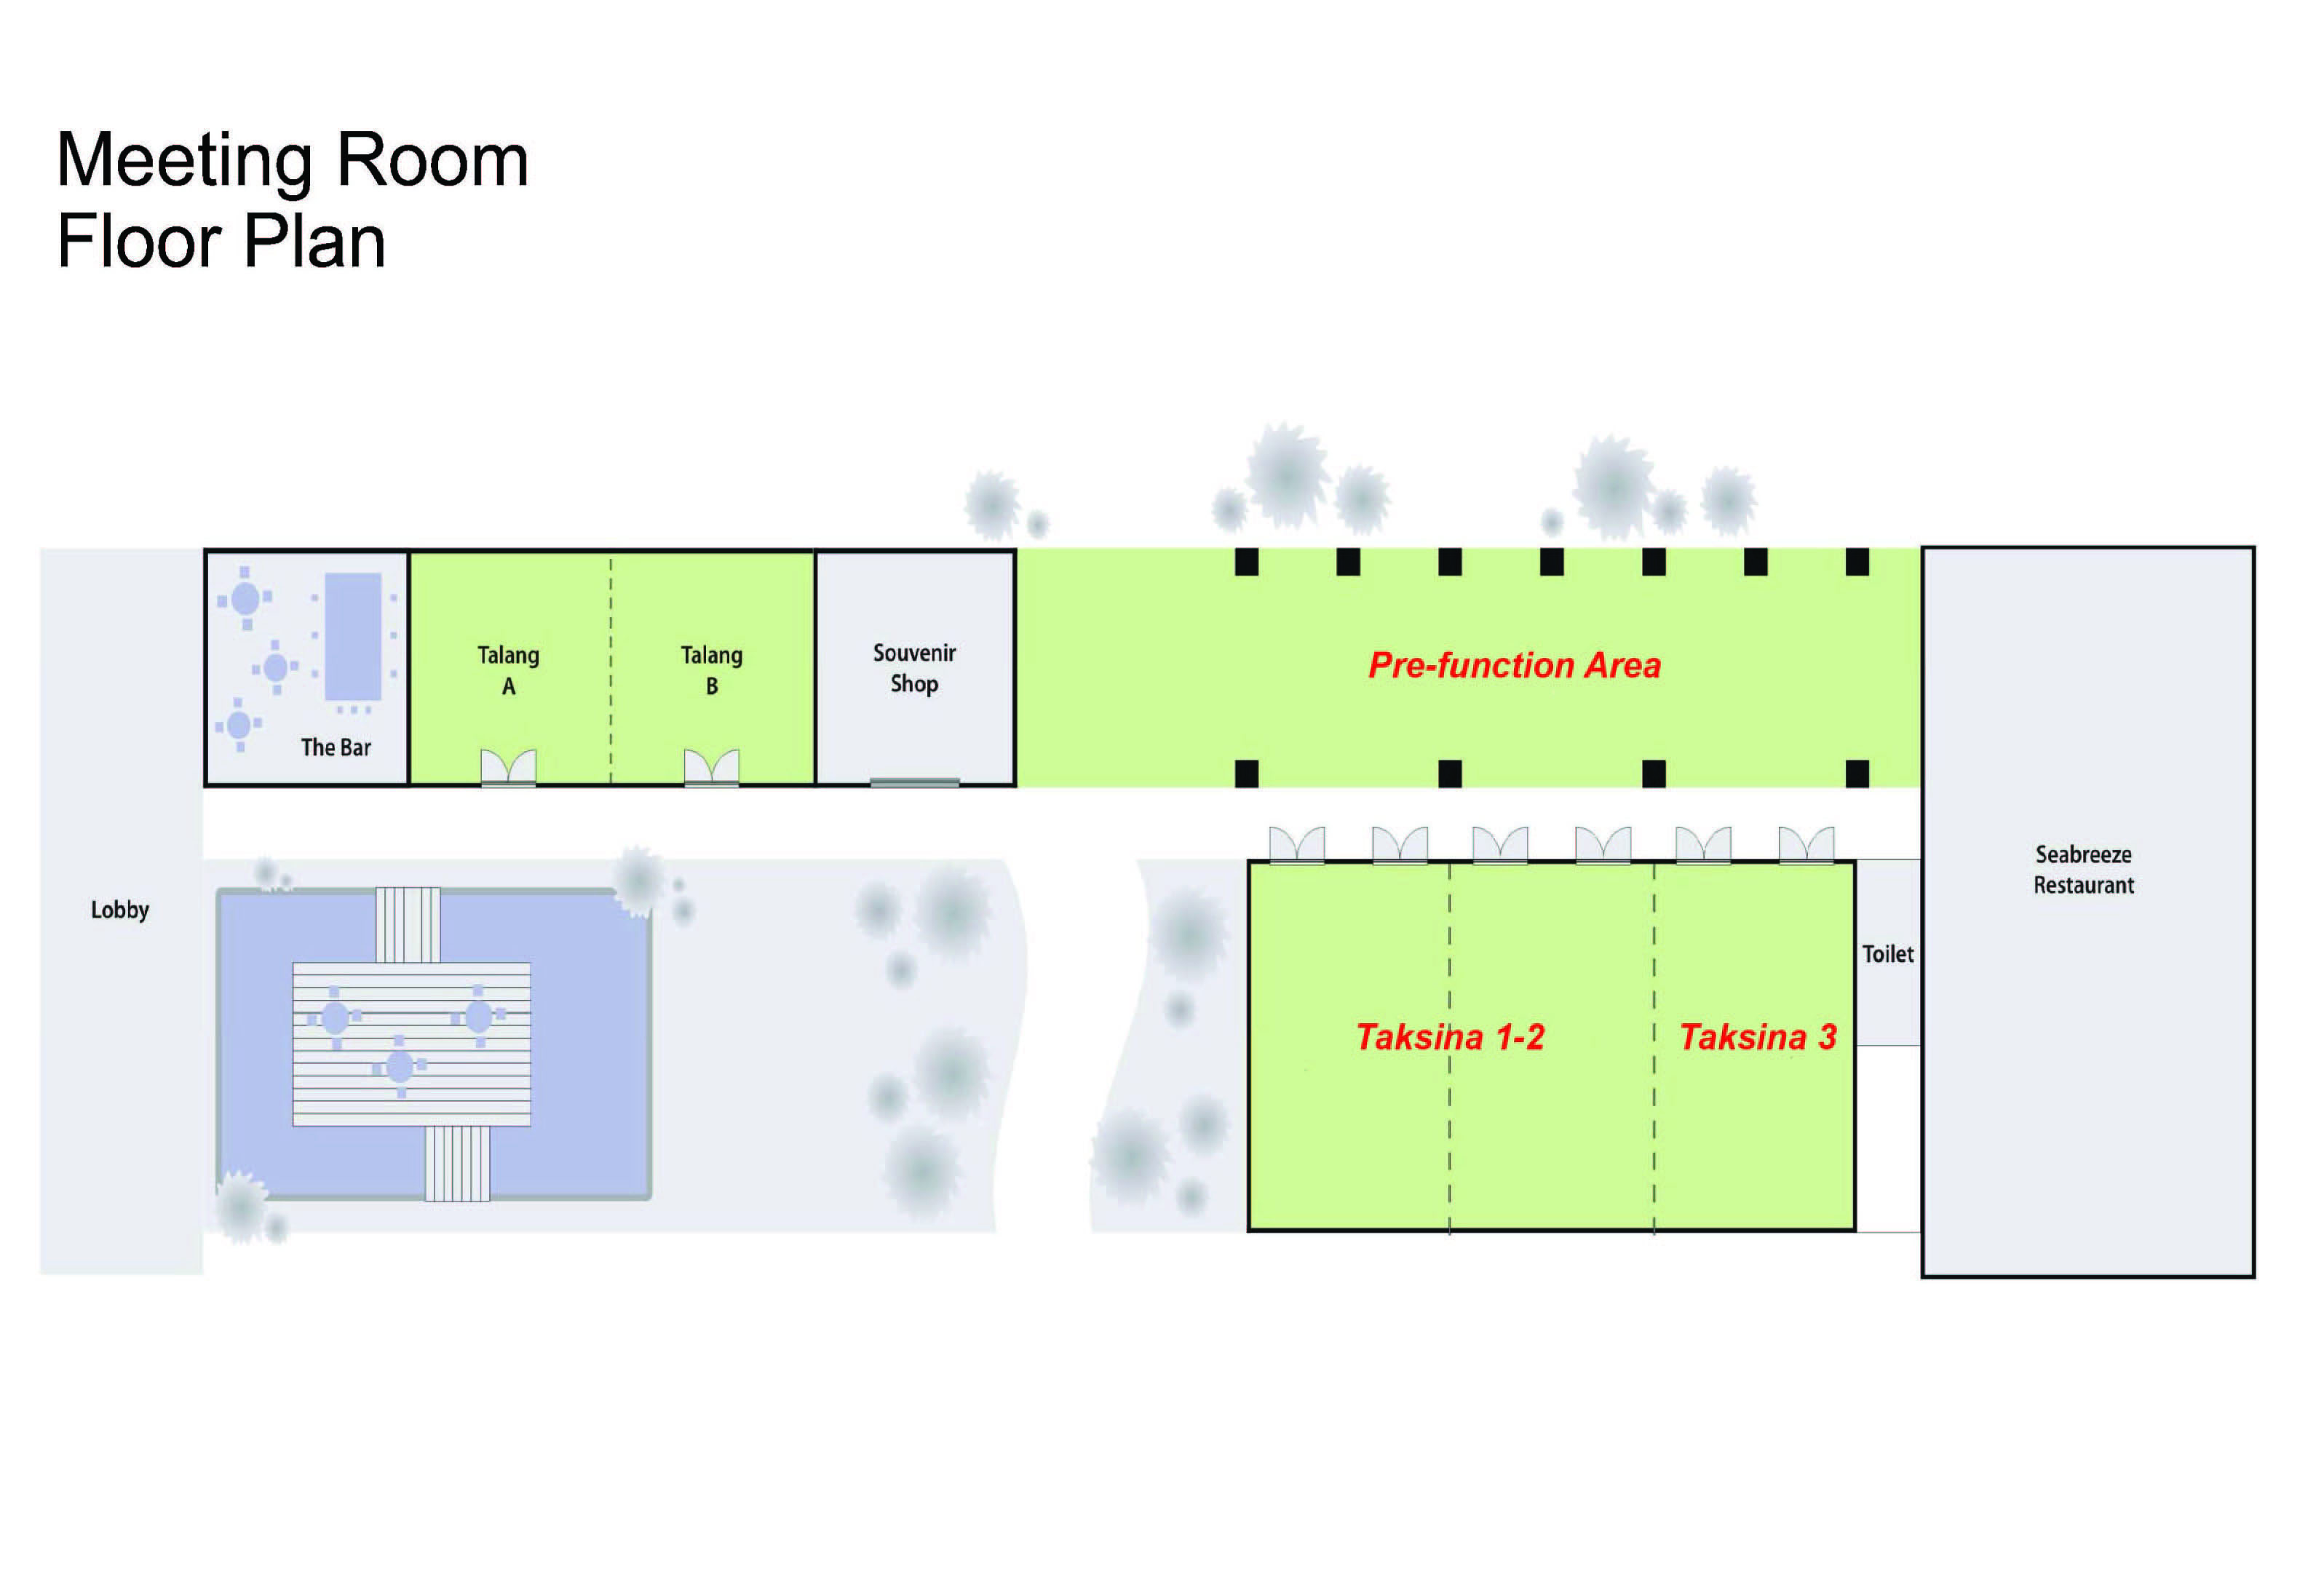 online meeting room planner Hyatt hotels and resorts offer stylish guestrooms, innovative meeting facilities and flexible exhibit space – plus access to nearby convention centers - for your perfect meeting.